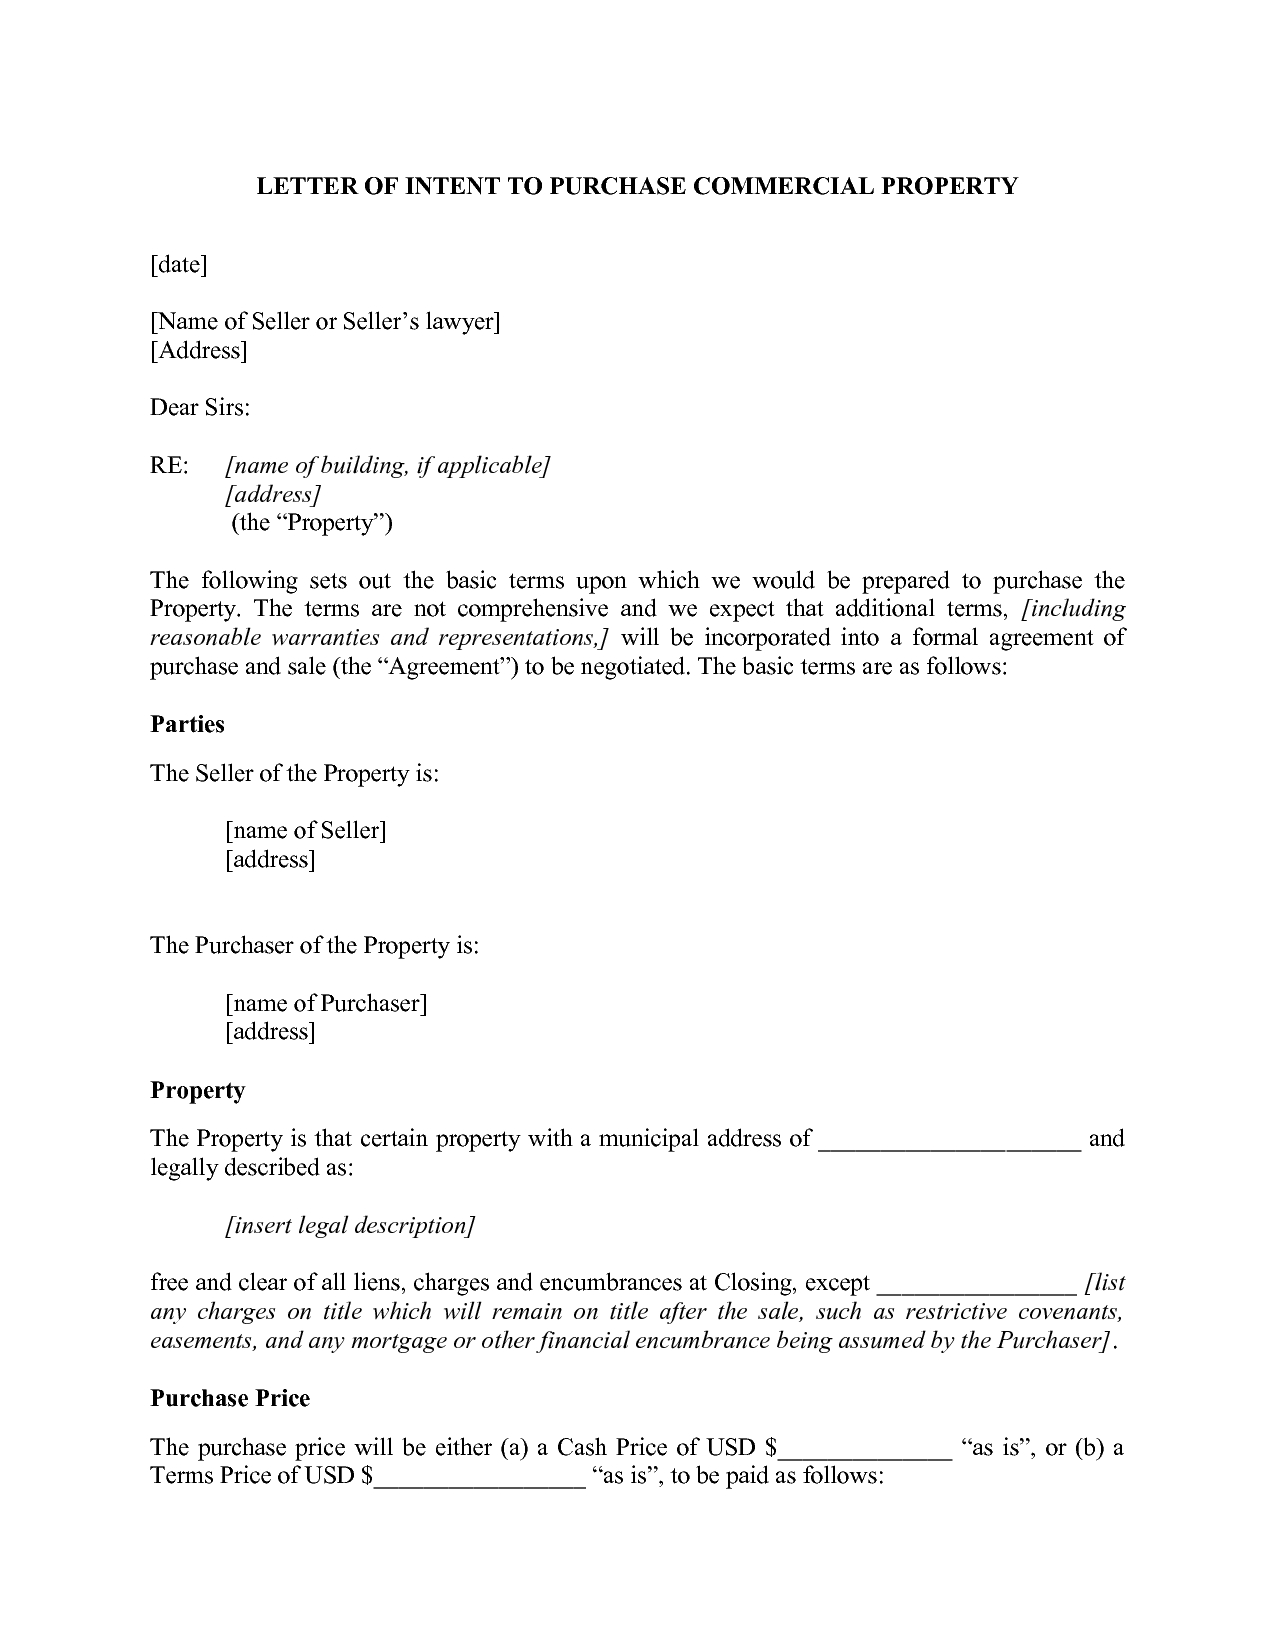 commercial real estate lease letter of intent template sample letter intent jpeg to lease mercial